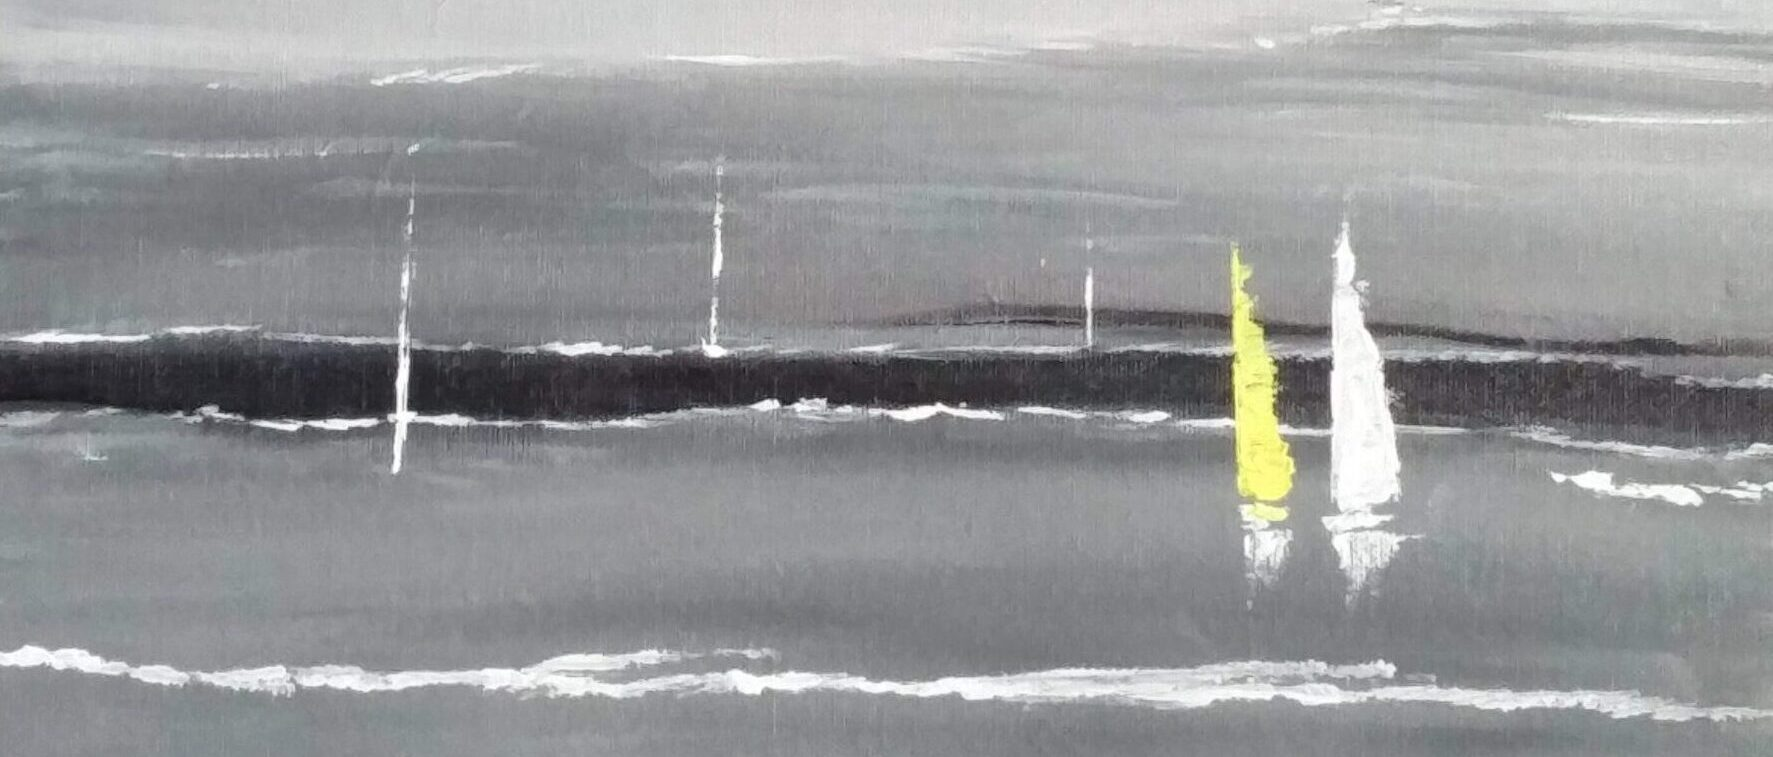 Painting of sailboats by Sucheta Jadhav for India's first solo circumnavigator Dilip Donde